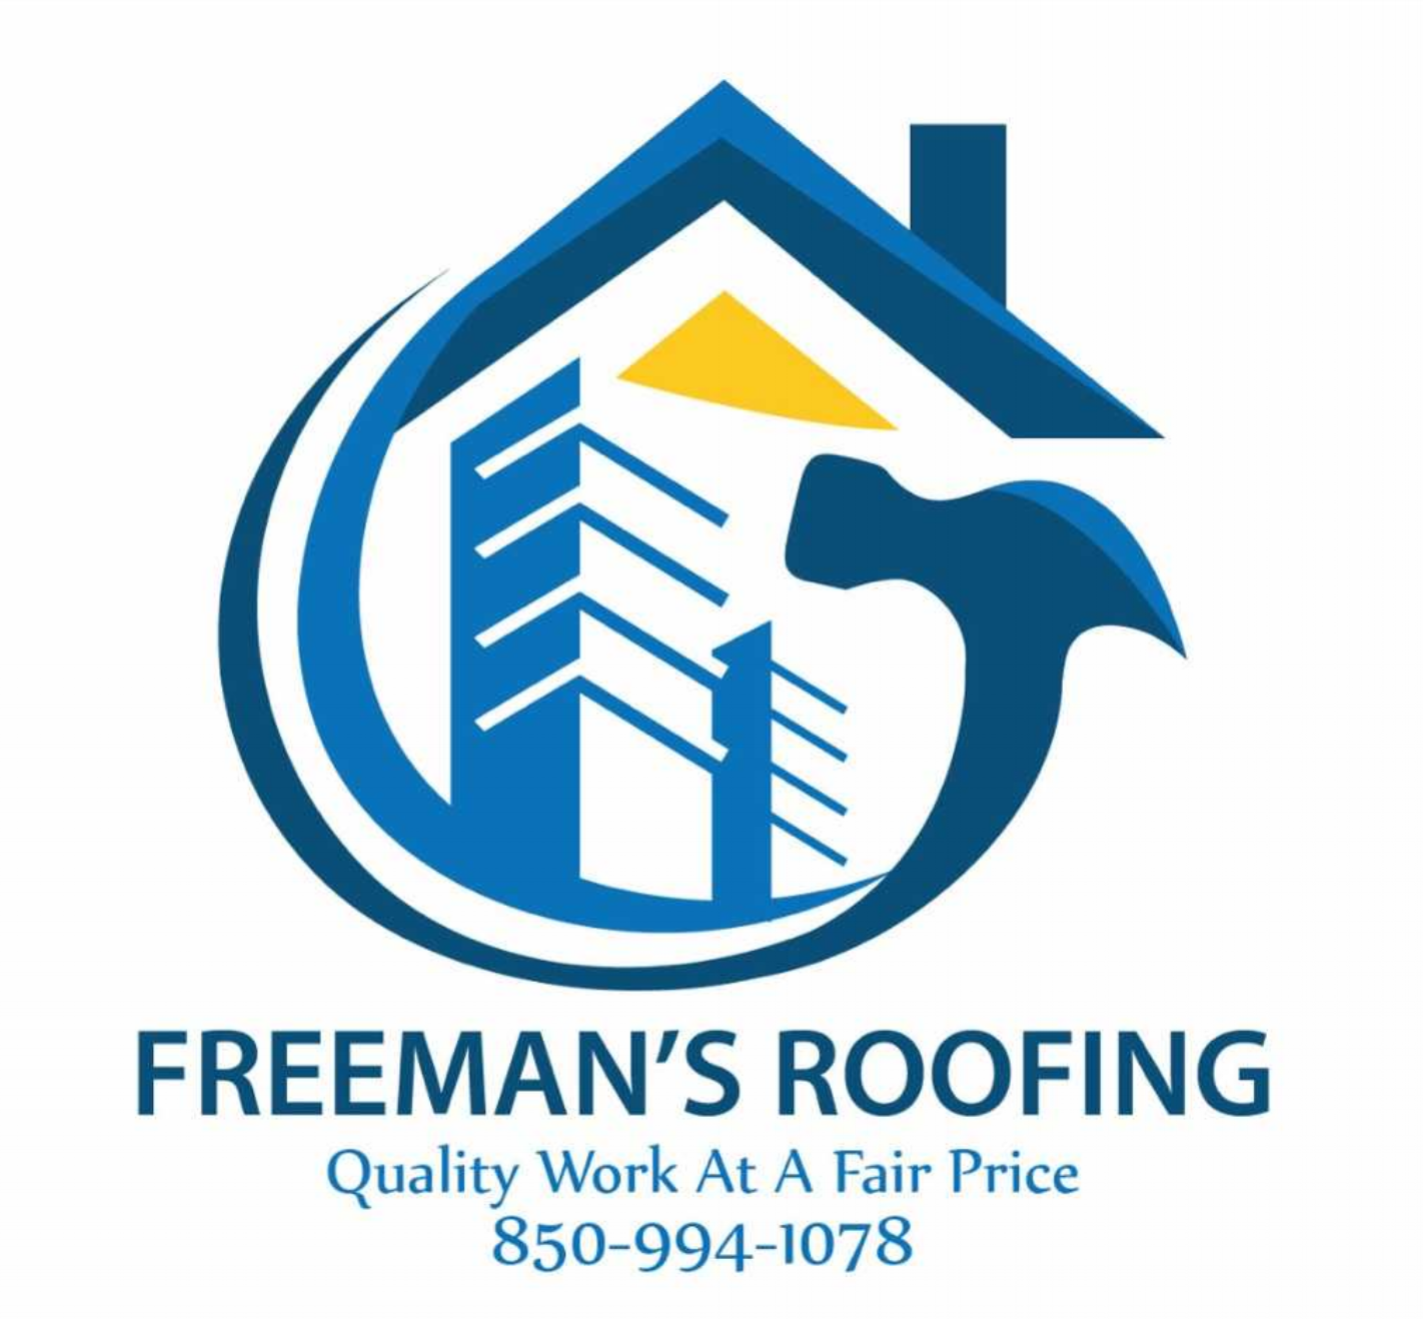 Freeman's Roofing